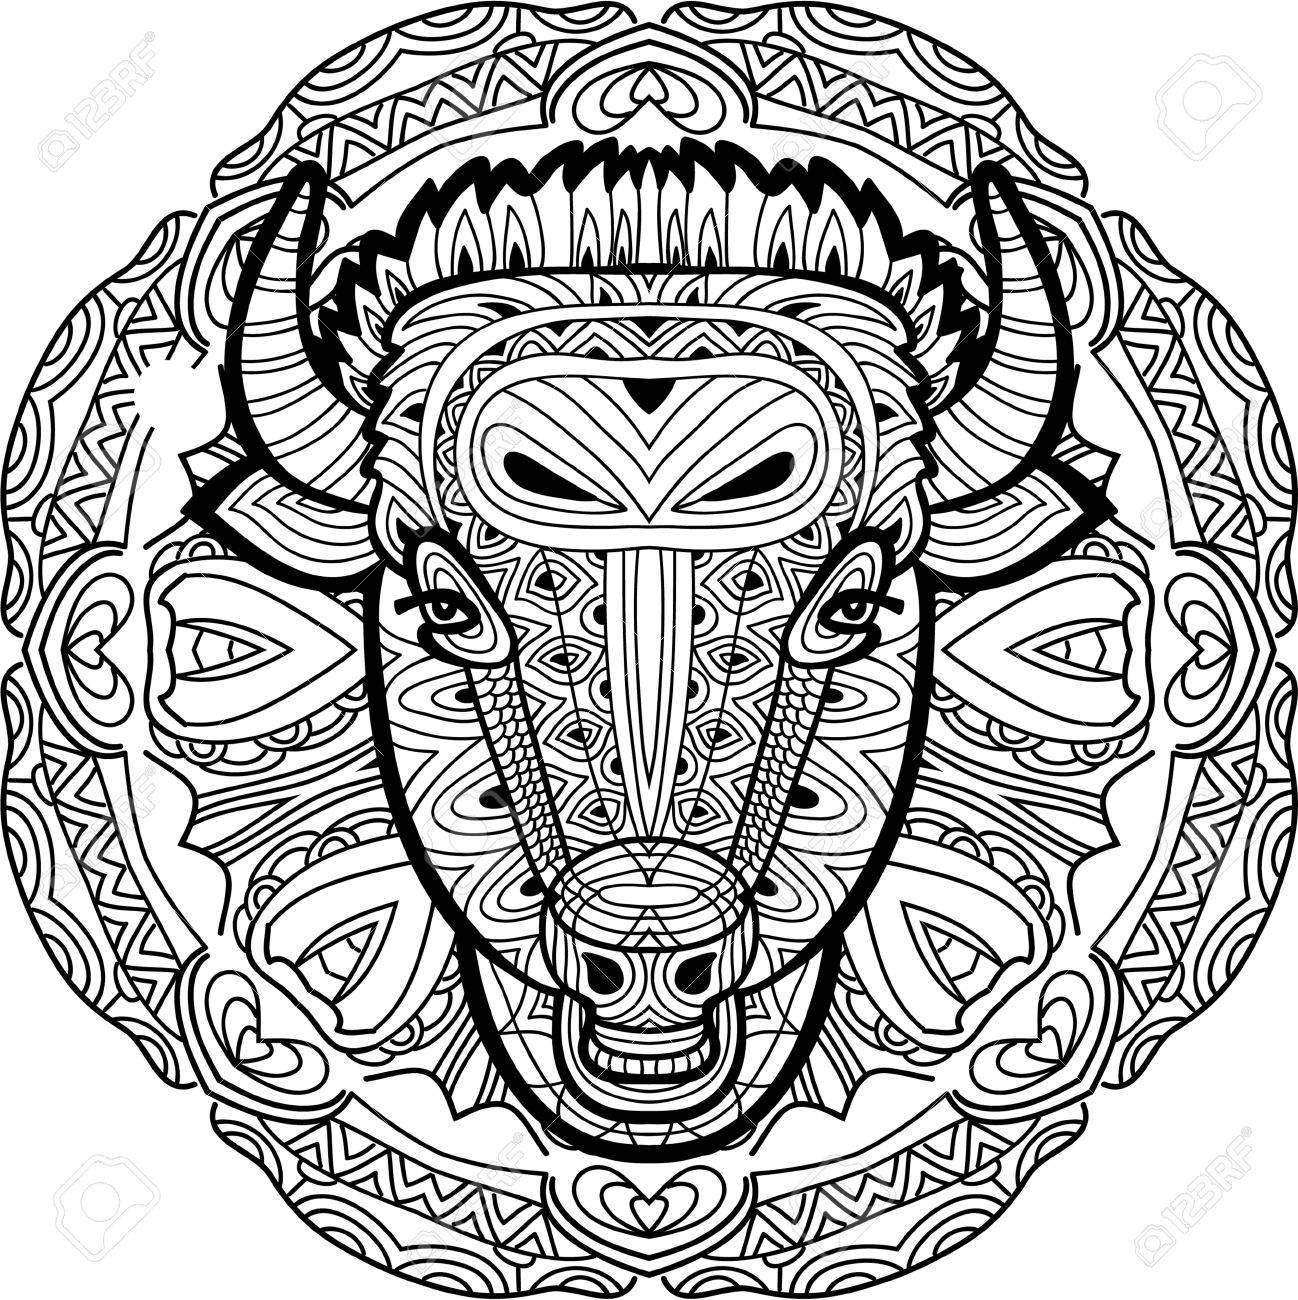 Coloring Page Book For Adults Line Art Design Monochrome Hand Drawn Ink Drawing Painted Bull On A Background Of Circular Tribal Pattern